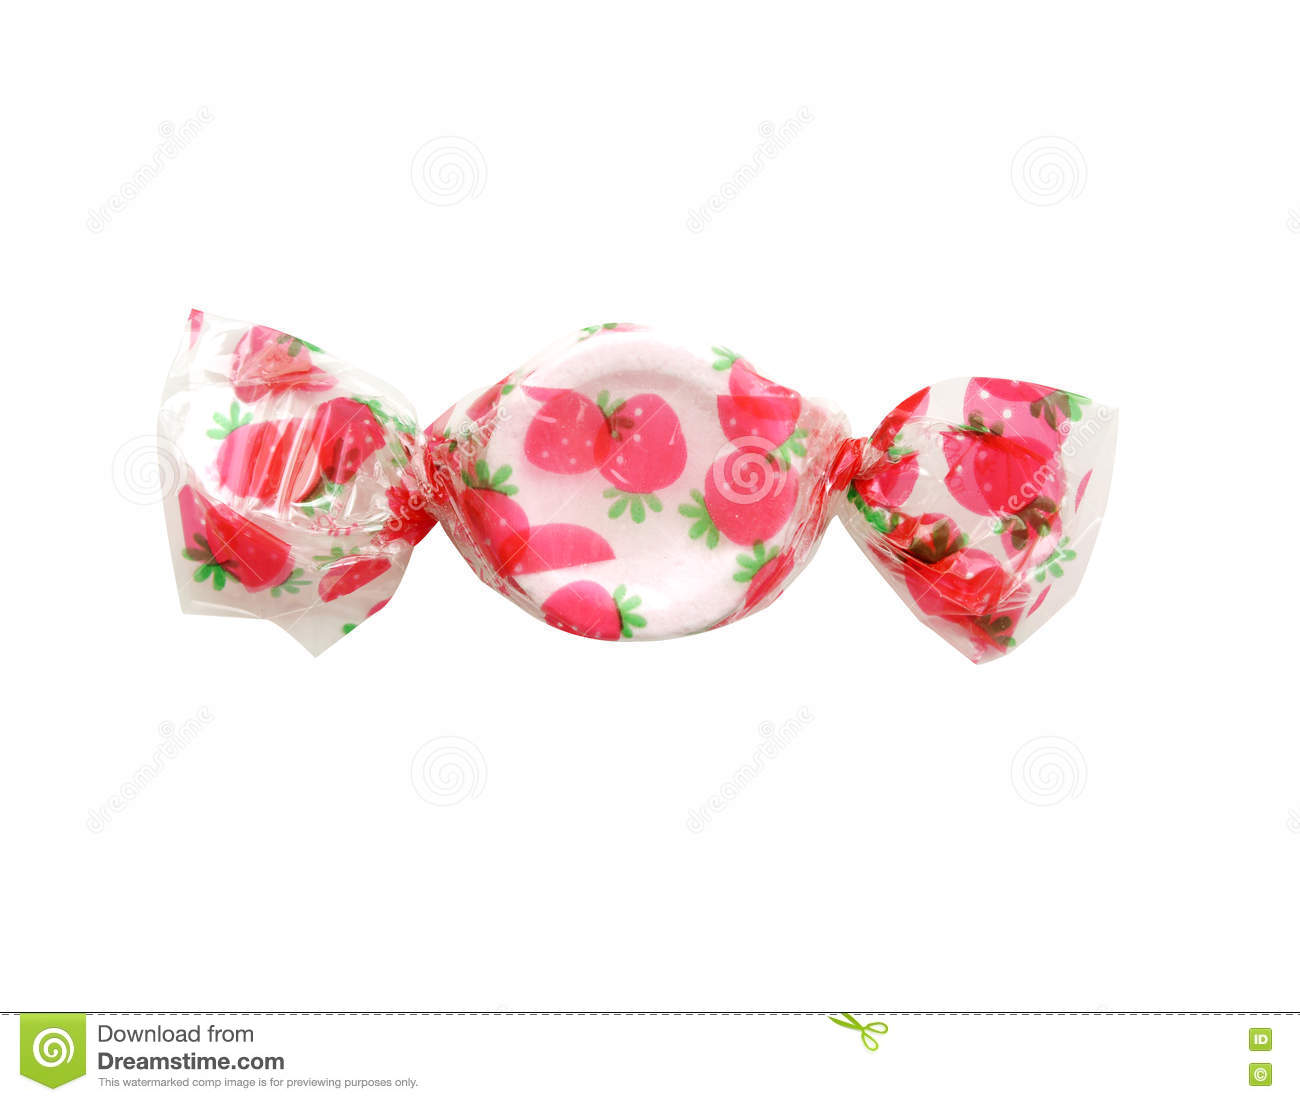 Sweet coloured strawberry candy isolated. clipping path.